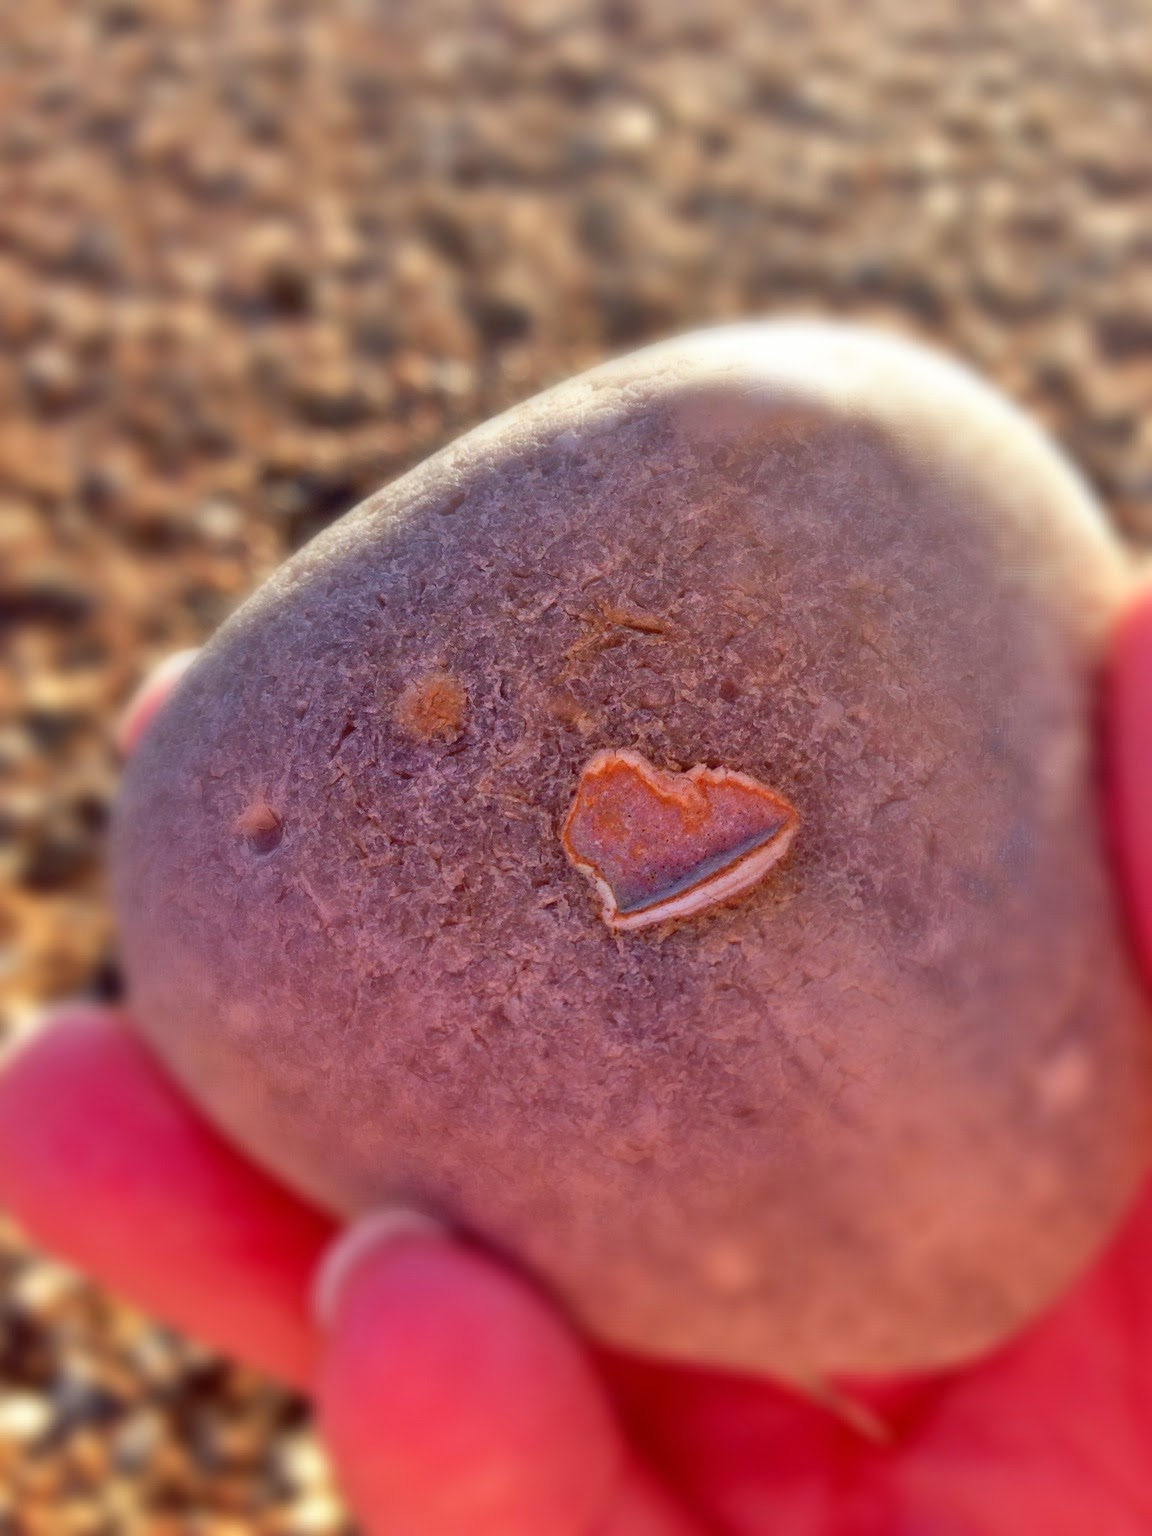 Close up Brighton beach heart #heartsfoundallovertheplace